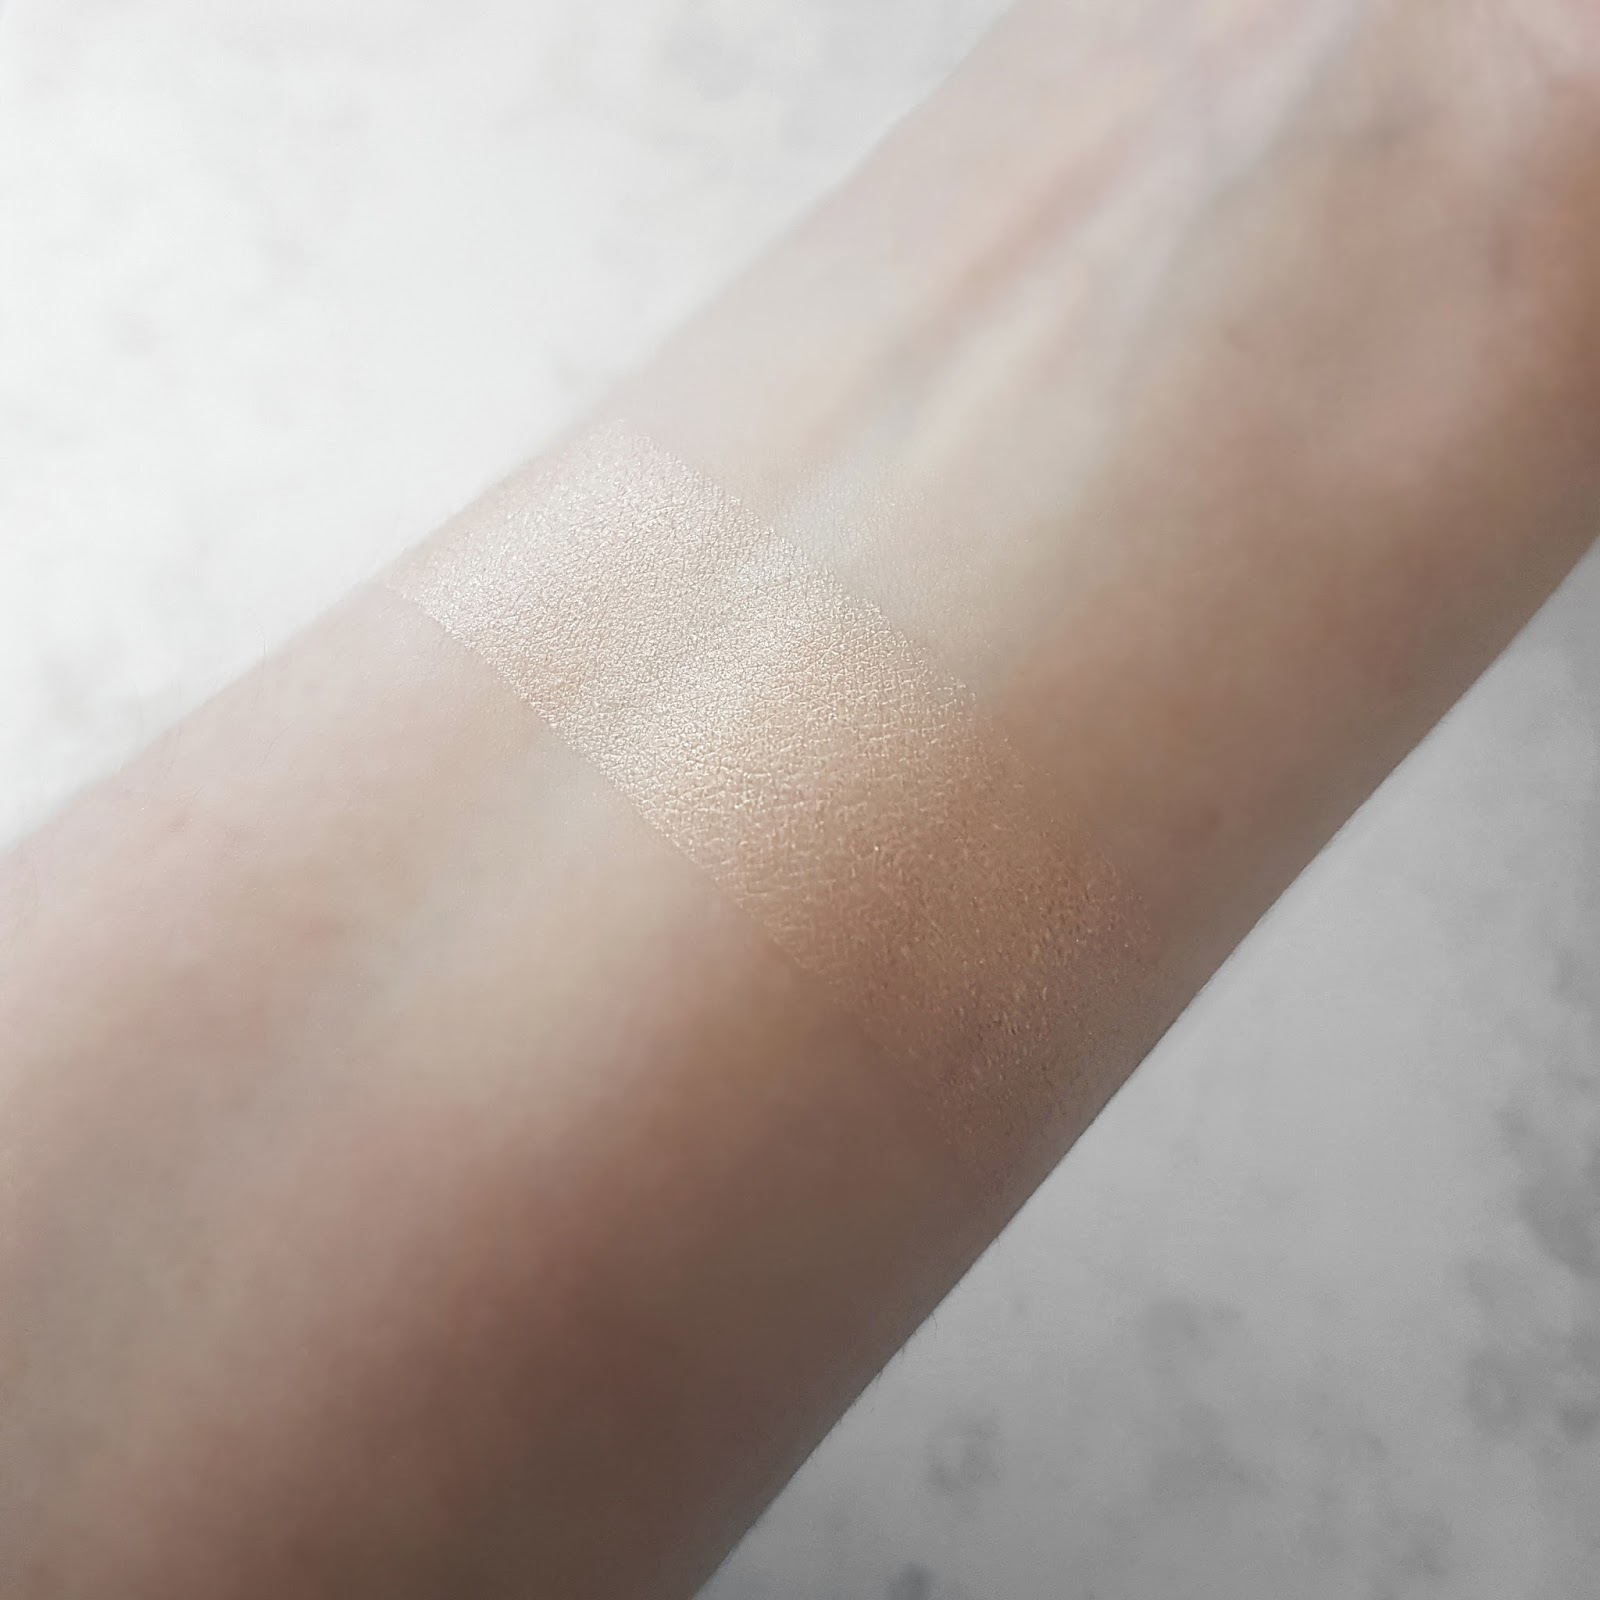 Swatch of the Illamasqua Gleam Highlighter